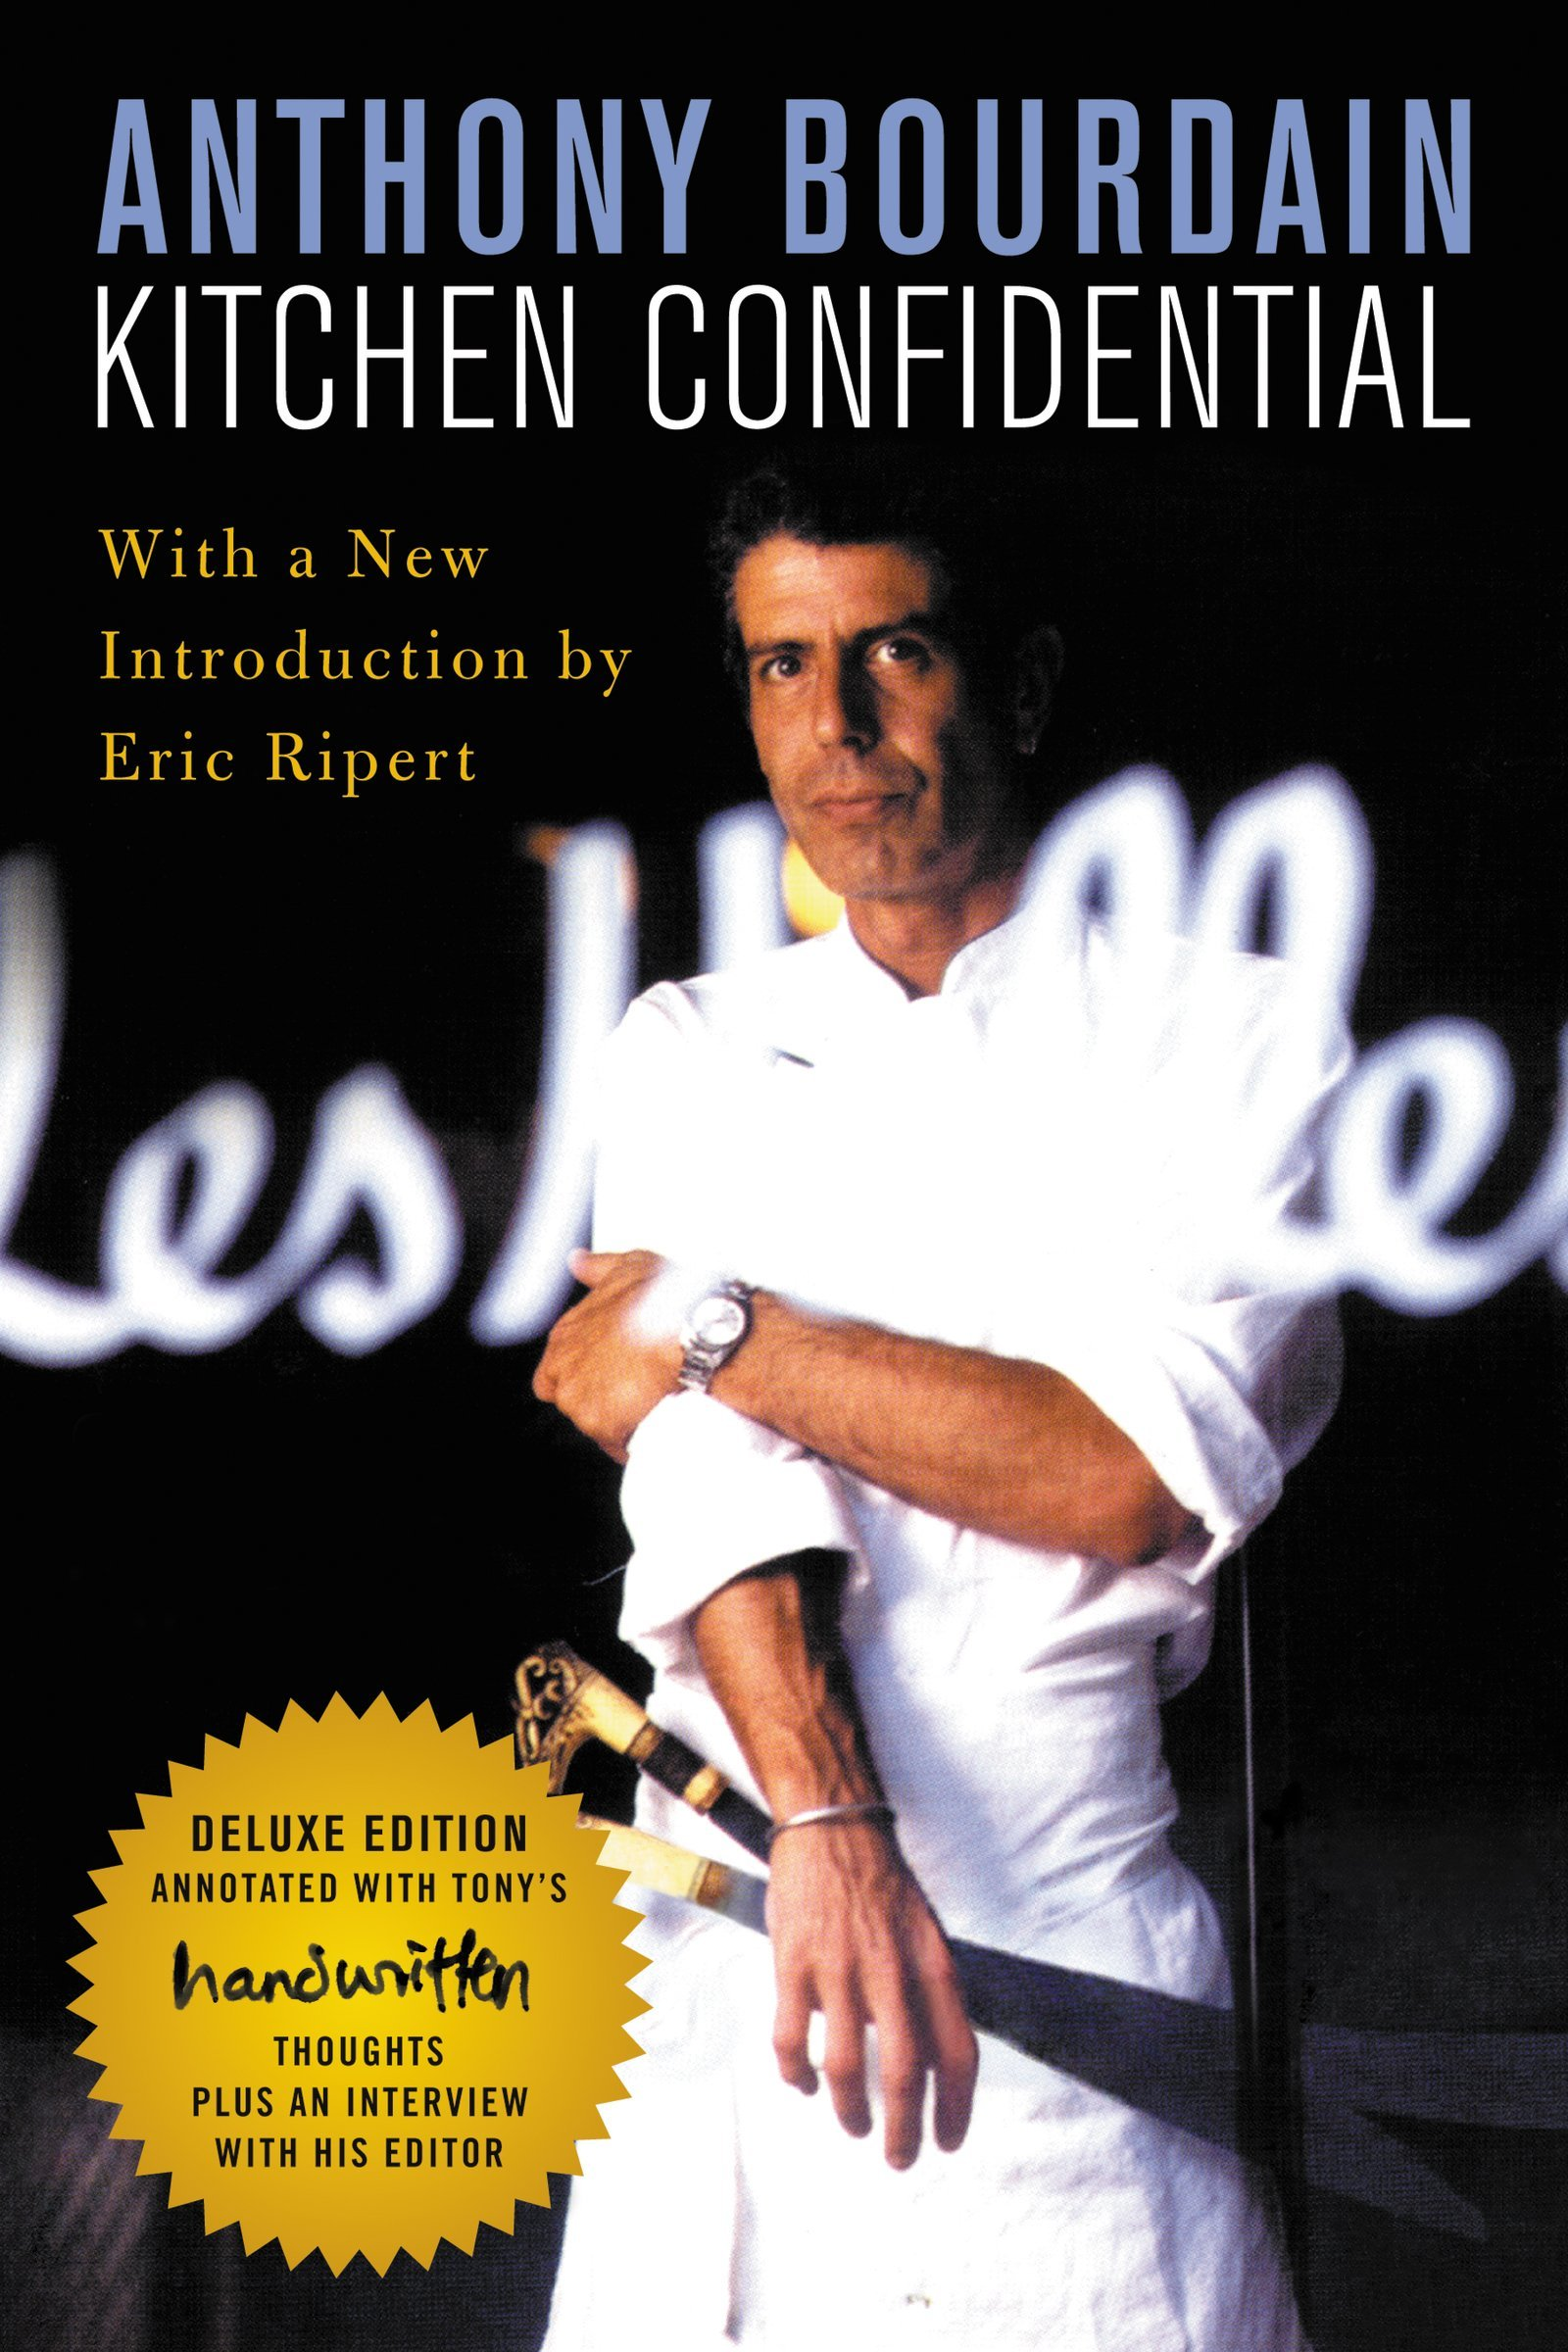 kitchen confidential.jpg